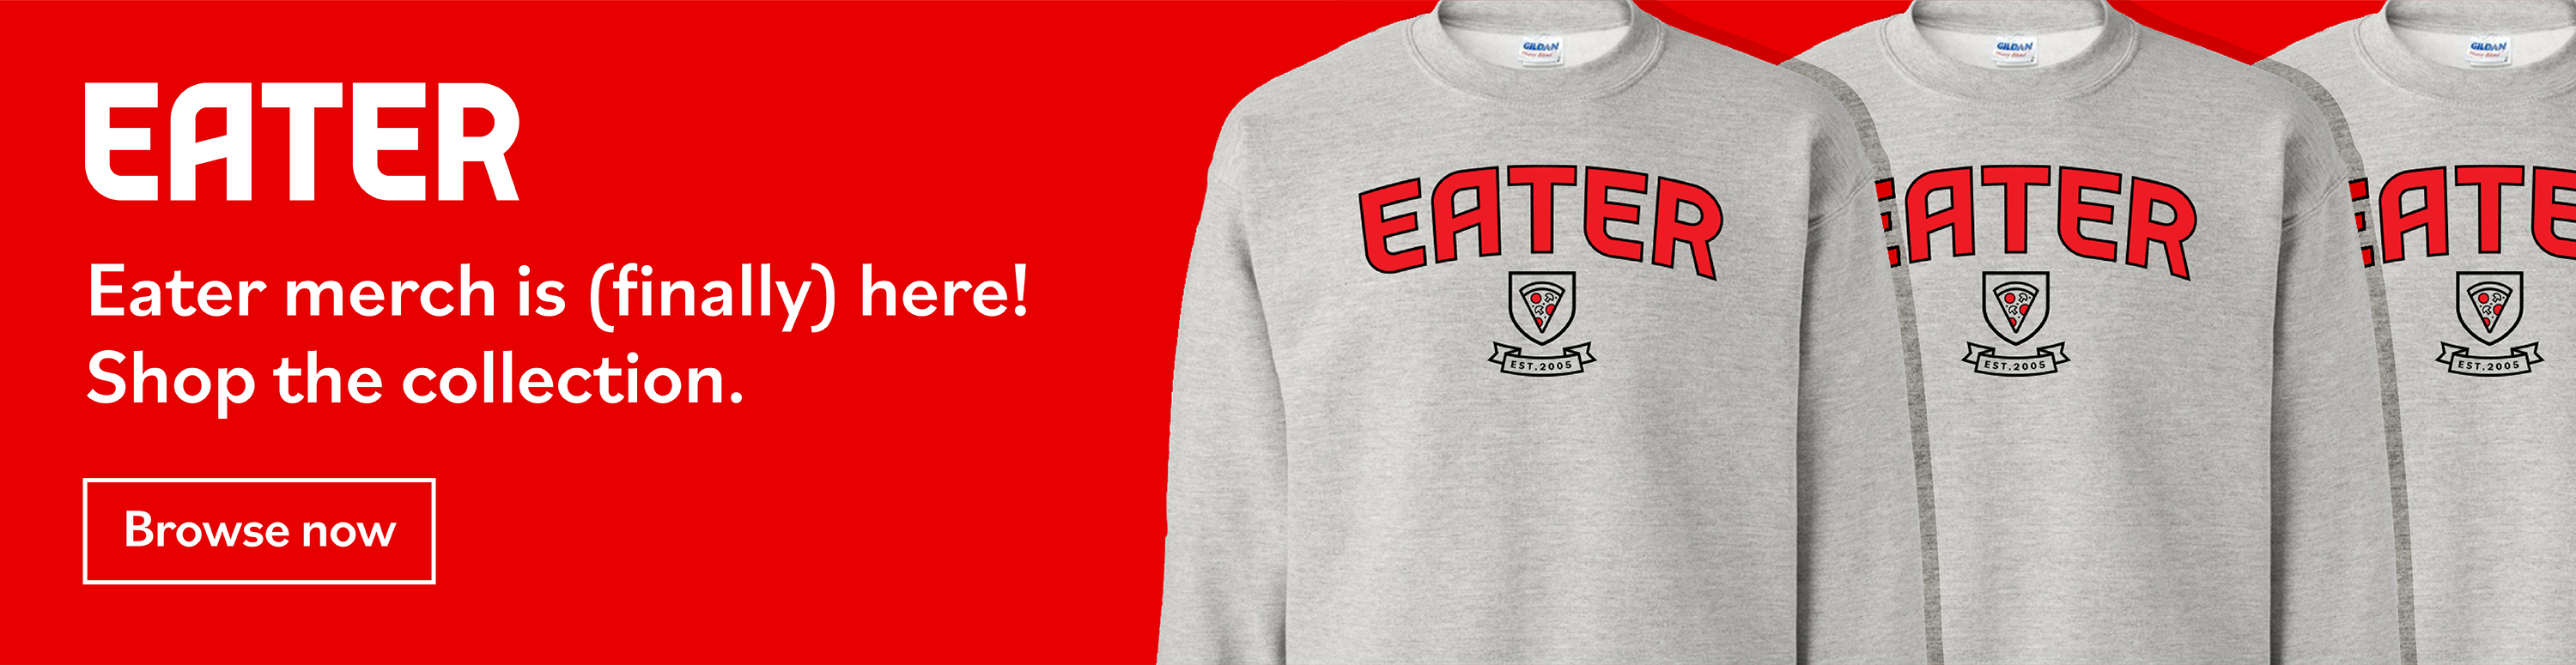 Eater merch is finally here! Promotional banner for eater sweatshirts, water bottles and hats.